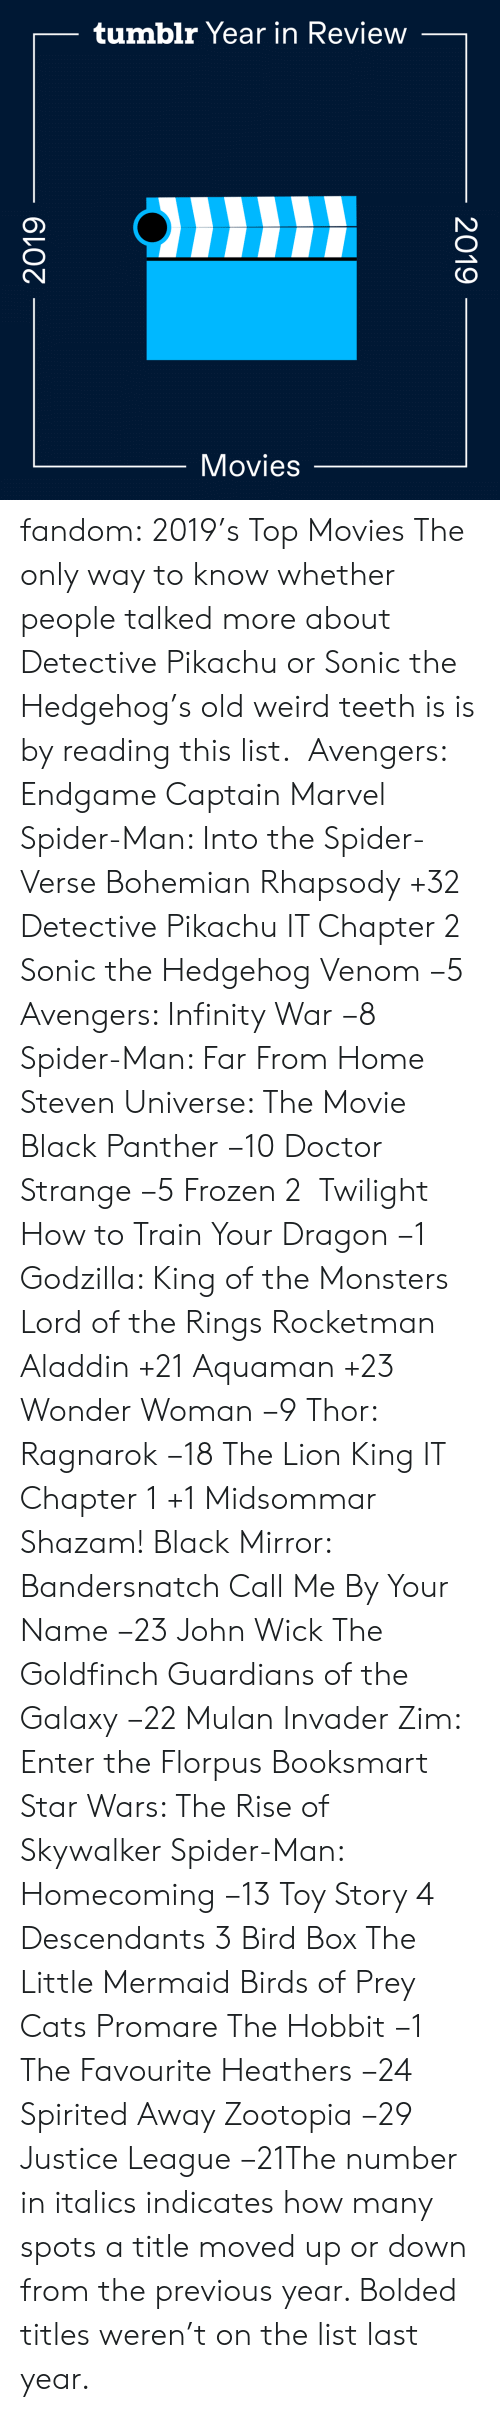 Aladdin: tumblr Year in Review  Movies  2019  2019 fandom:  2019's Top Movies  The only way to know whether people talked more about Detective Pikachu or Sonic the Hedgehog's old weird teeth is is by reading this list.   Avengers: Endgame  Captain Marvel  Spider-Man: Into the Spider-Verse  Bohemian Rhapsody +32  Detective Pikachu  IT Chapter 2  Sonic the Hedgehog  Venom −5  Avengers: Infinity War −8  Spider-Man: Far From Home  Steven Universe: The Movie  Black Panther −10  Doctor Strange −5  Frozen 2   Twilight  How to Train Your Dragon −1  Godzilla: King of the Monsters  Lord of the Rings  Rocketman  Aladdin +21  Aquaman +23  Wonder Woman −9  Thor: Ragnarok −18  The Lion King  IT Chapter 1 +1  Midsommar  Shazam!  Black Mirror: Bandersnatch  Call Me By Your Name −23  John Wick  The Goldfinch  Guardians of the Galaxy −22  Mulan  Invader Zim: Enter the Florpus  Booksmart  Star Wars: The Rise of Skywalker  Spider-Man: Homecoming −13  Toy Story 4  Descendants 3  Bird Box  The Little Mermaid  Birds of Prey  Cats  Promare  The Hobbit −1  The Favourite  Heathers −24  Spirited Away  Zootopia −29 Justice League −21The number in italics indicates how many spots a title moved up or down from the previous year. Bolded titles weren't on the list last year.